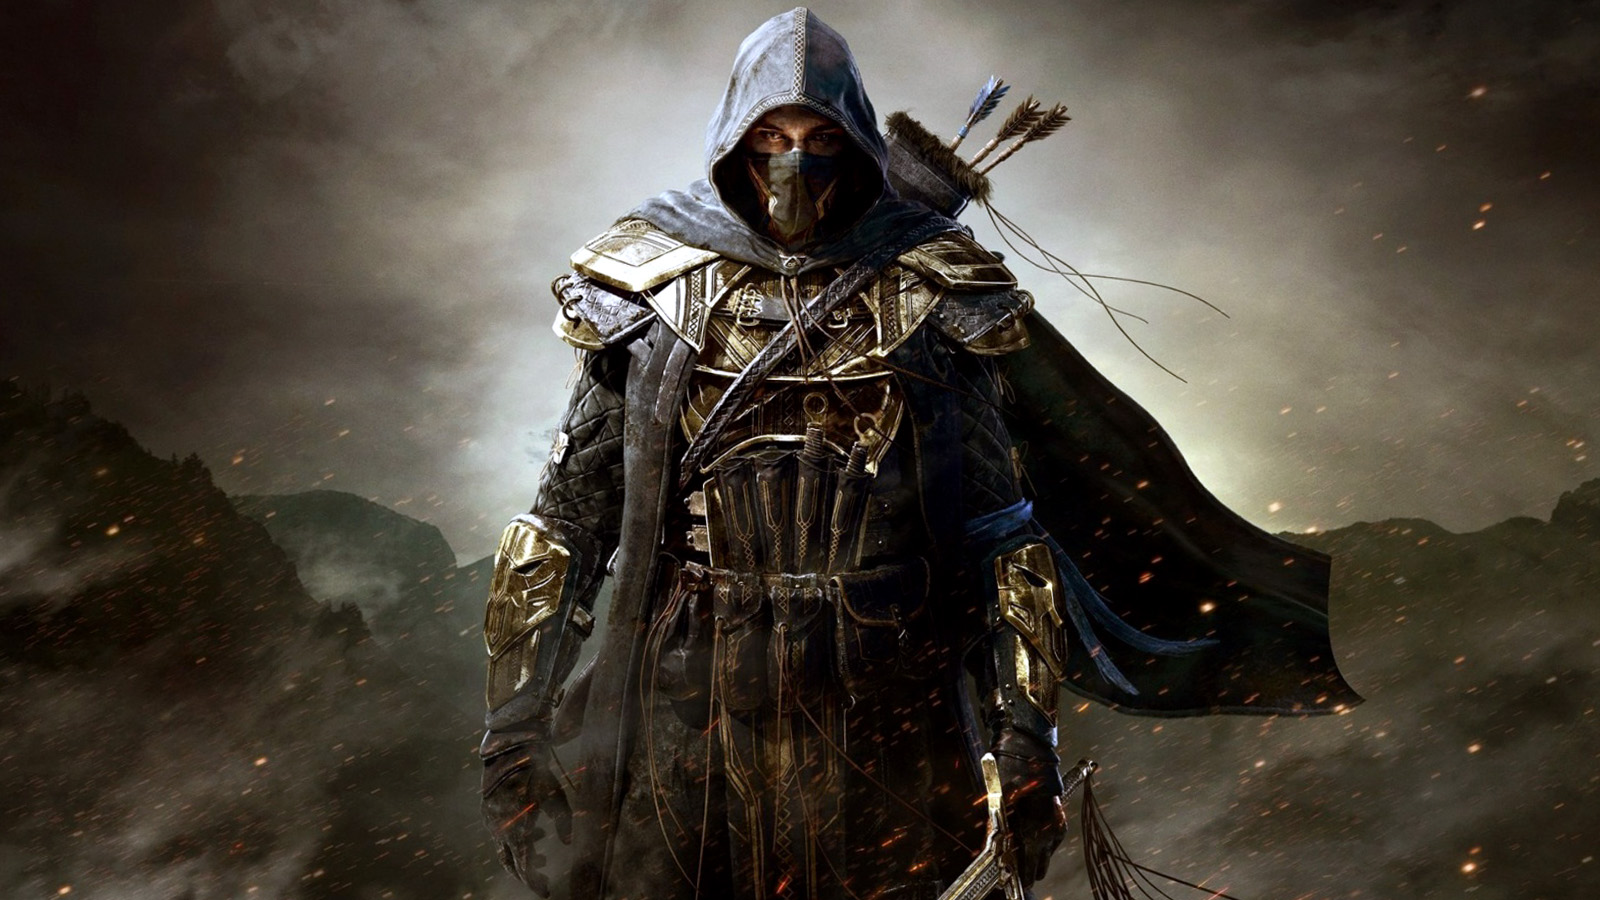 Hd wallpaper hero - Cool Hero Thief Game Wallpapers Hd Desktop And Mobile Backgrounds